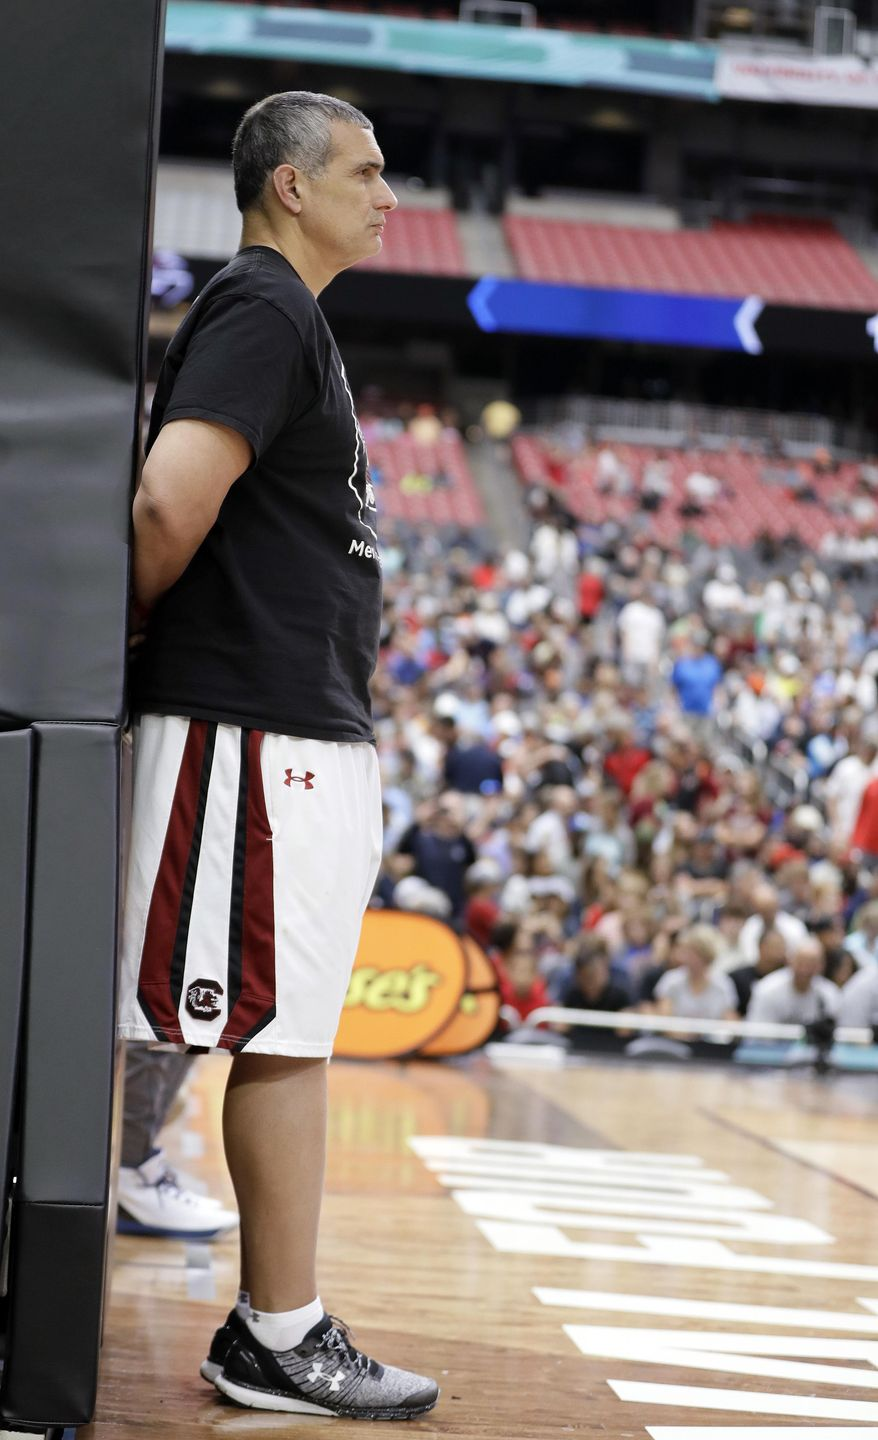 South Carolina head coach Frank Martin watches during a practice session for their NCAA Final Four tournament college basketball semifinal game Friday, March 31, 2017, in Glendale, Ariz. (AP Photo/Mark Humphrey)